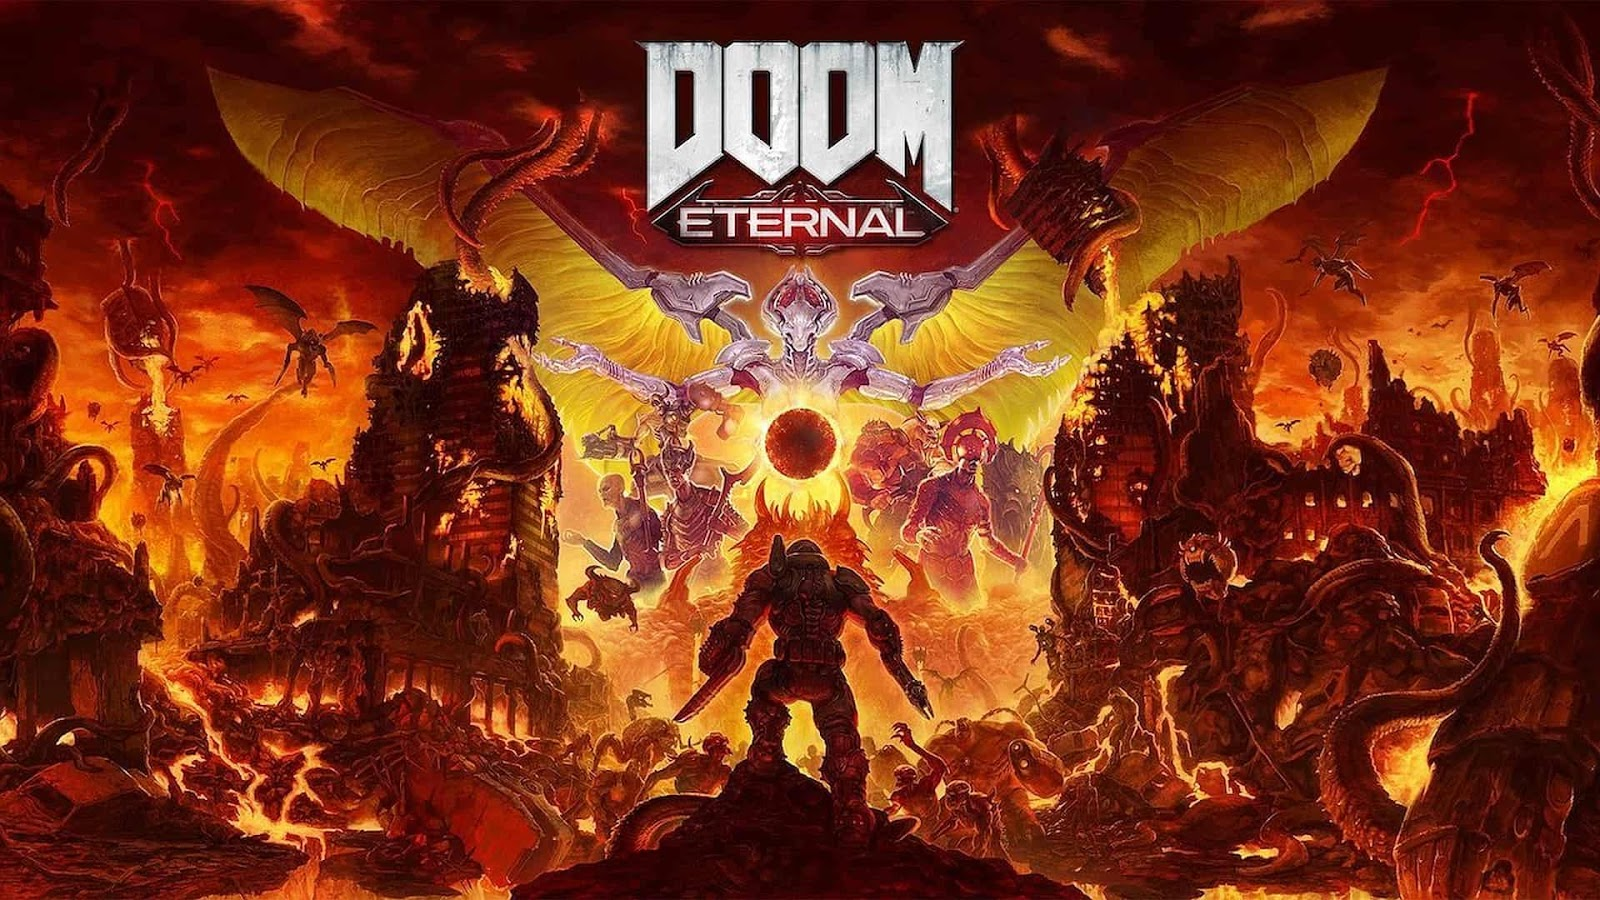 مراجعة DOOM Eternal  الشياطين و الفوضي